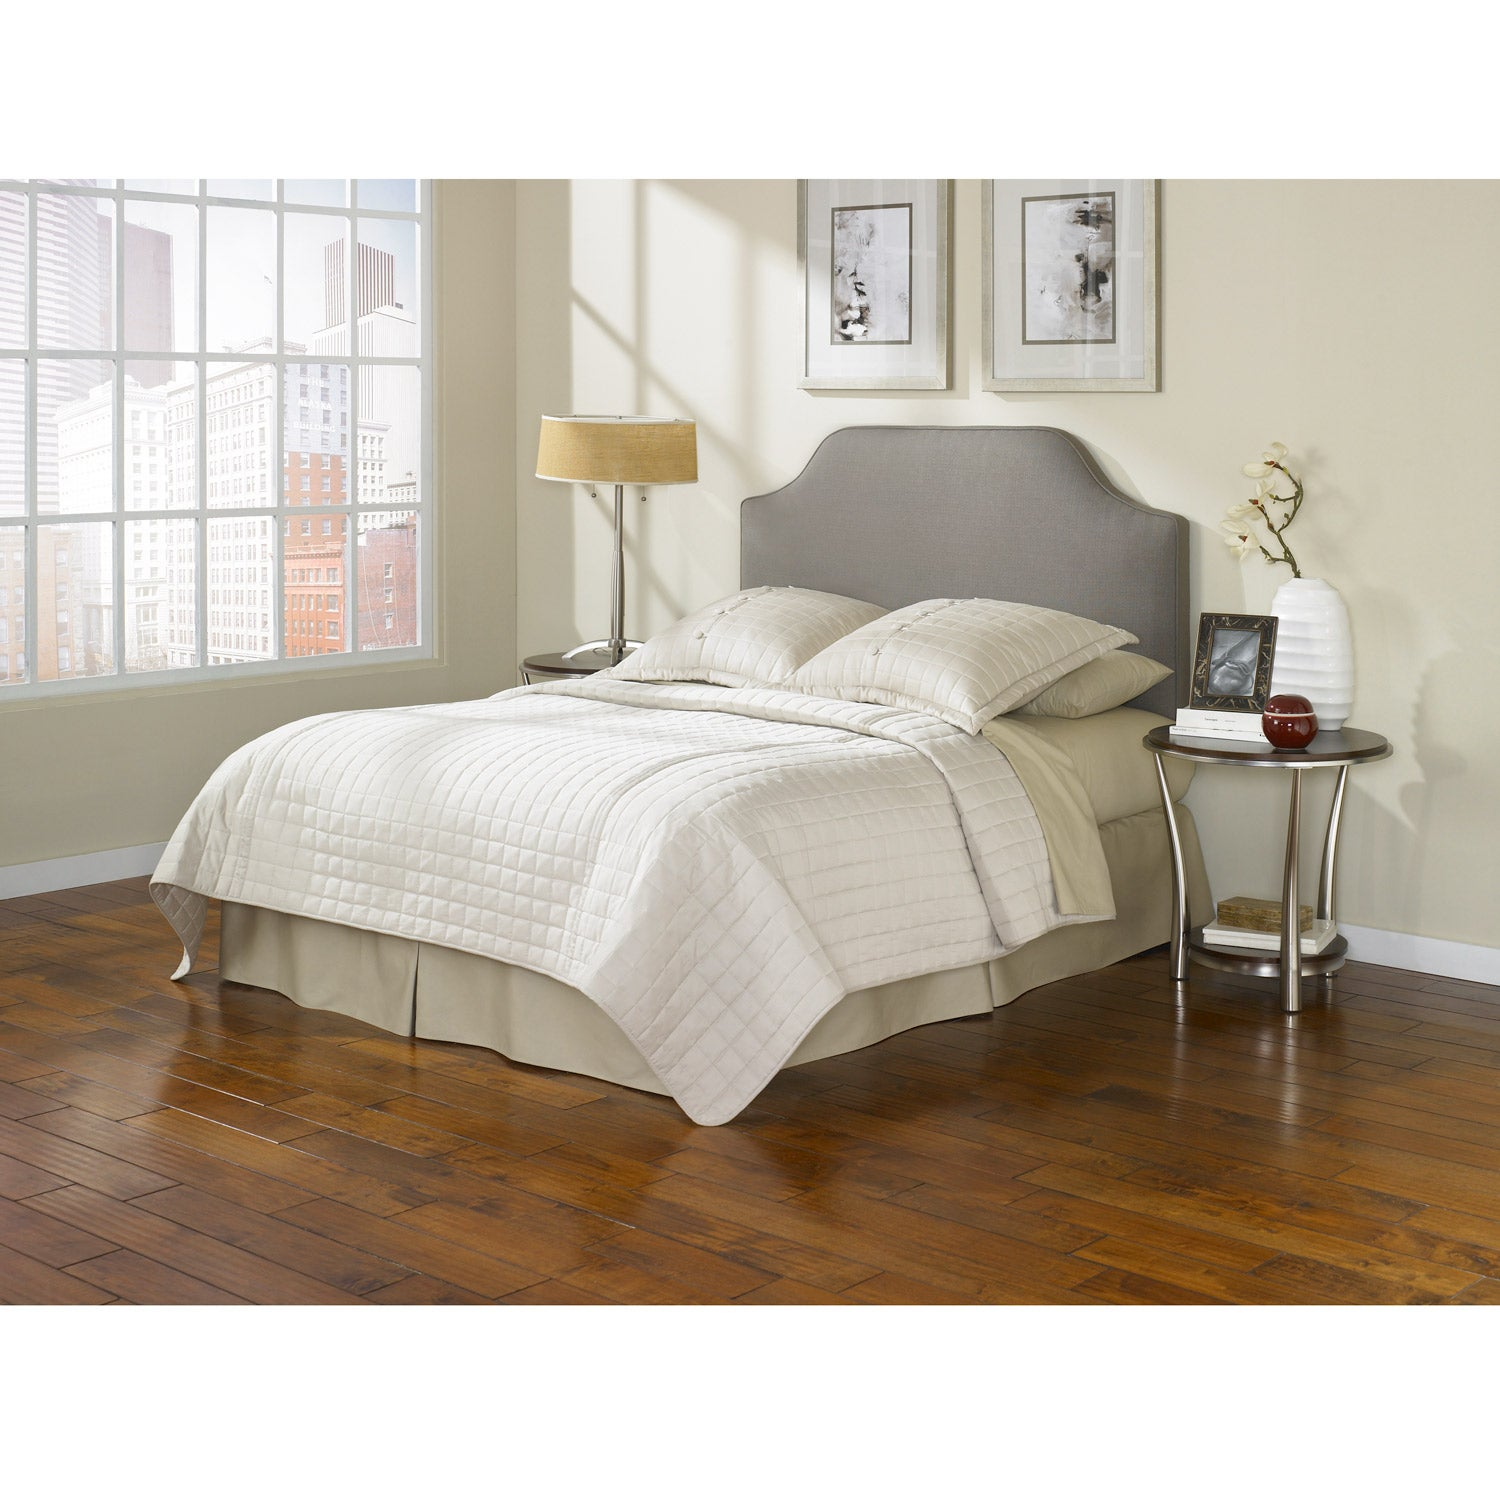 Fashion Bed Bordeaux taupe queen/full size headboard